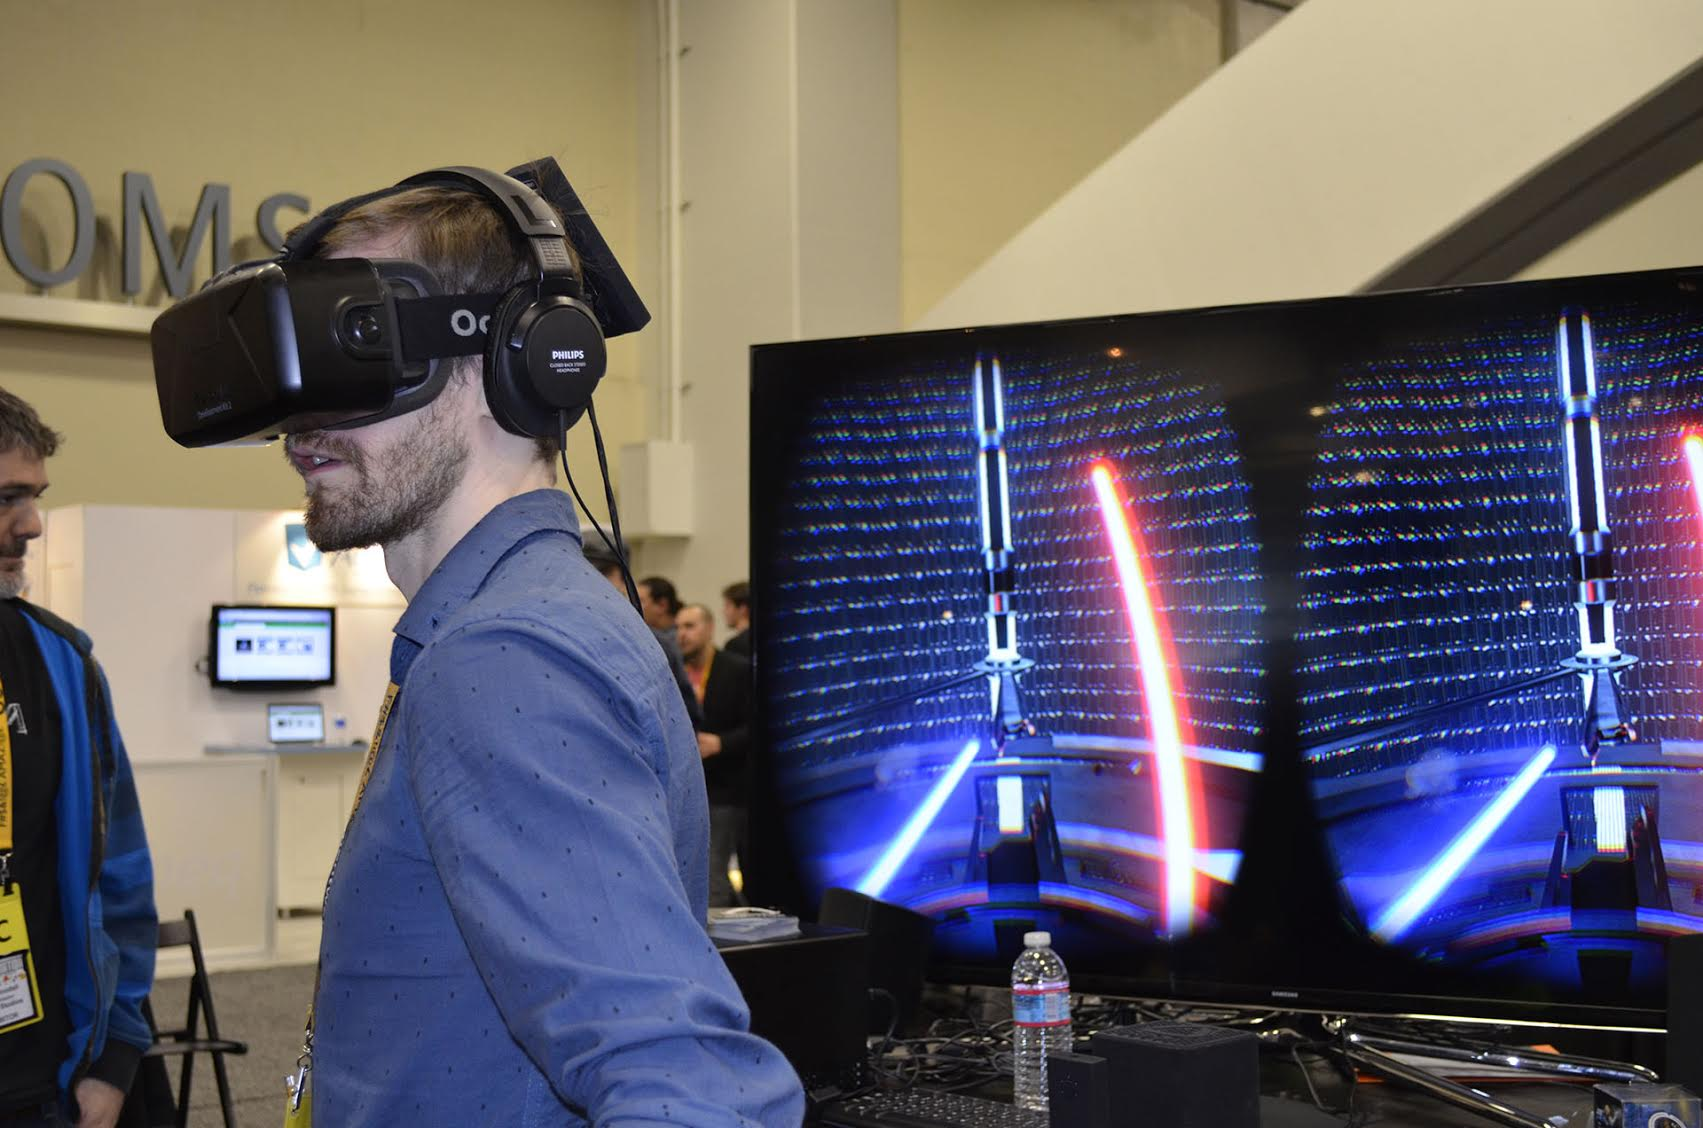 Sixense's Danny Woodall on Porting 'Jedi Training' STEM Demo to